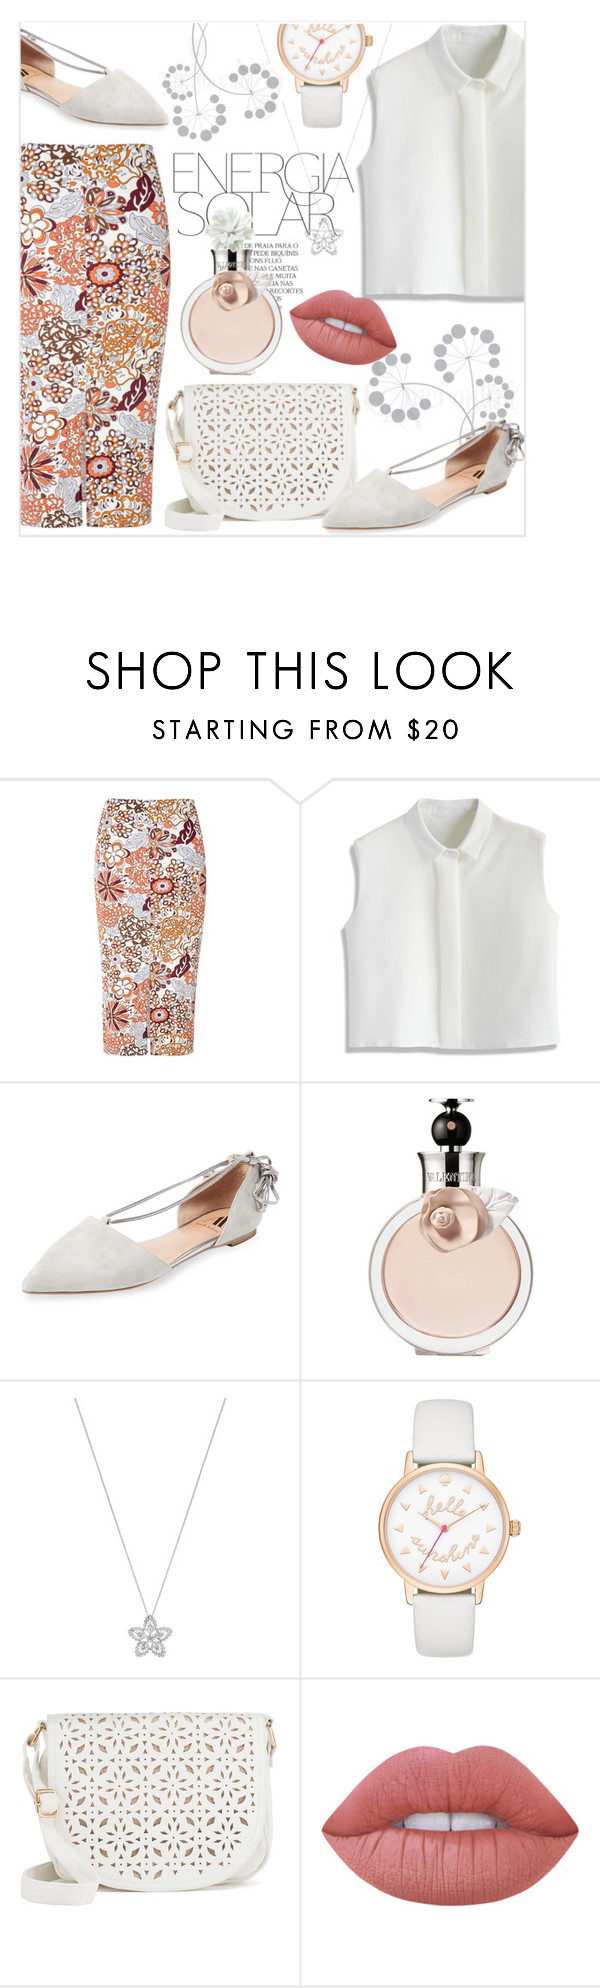 """""""New retro"""" by cilita-d ❤ liked on Polyvore featuring Glamorous, Magdalena, Chicwish, Ava & Aiden, Valentino, Lalique, Kate Spade, Under One Sky, Lime Crime and white"""